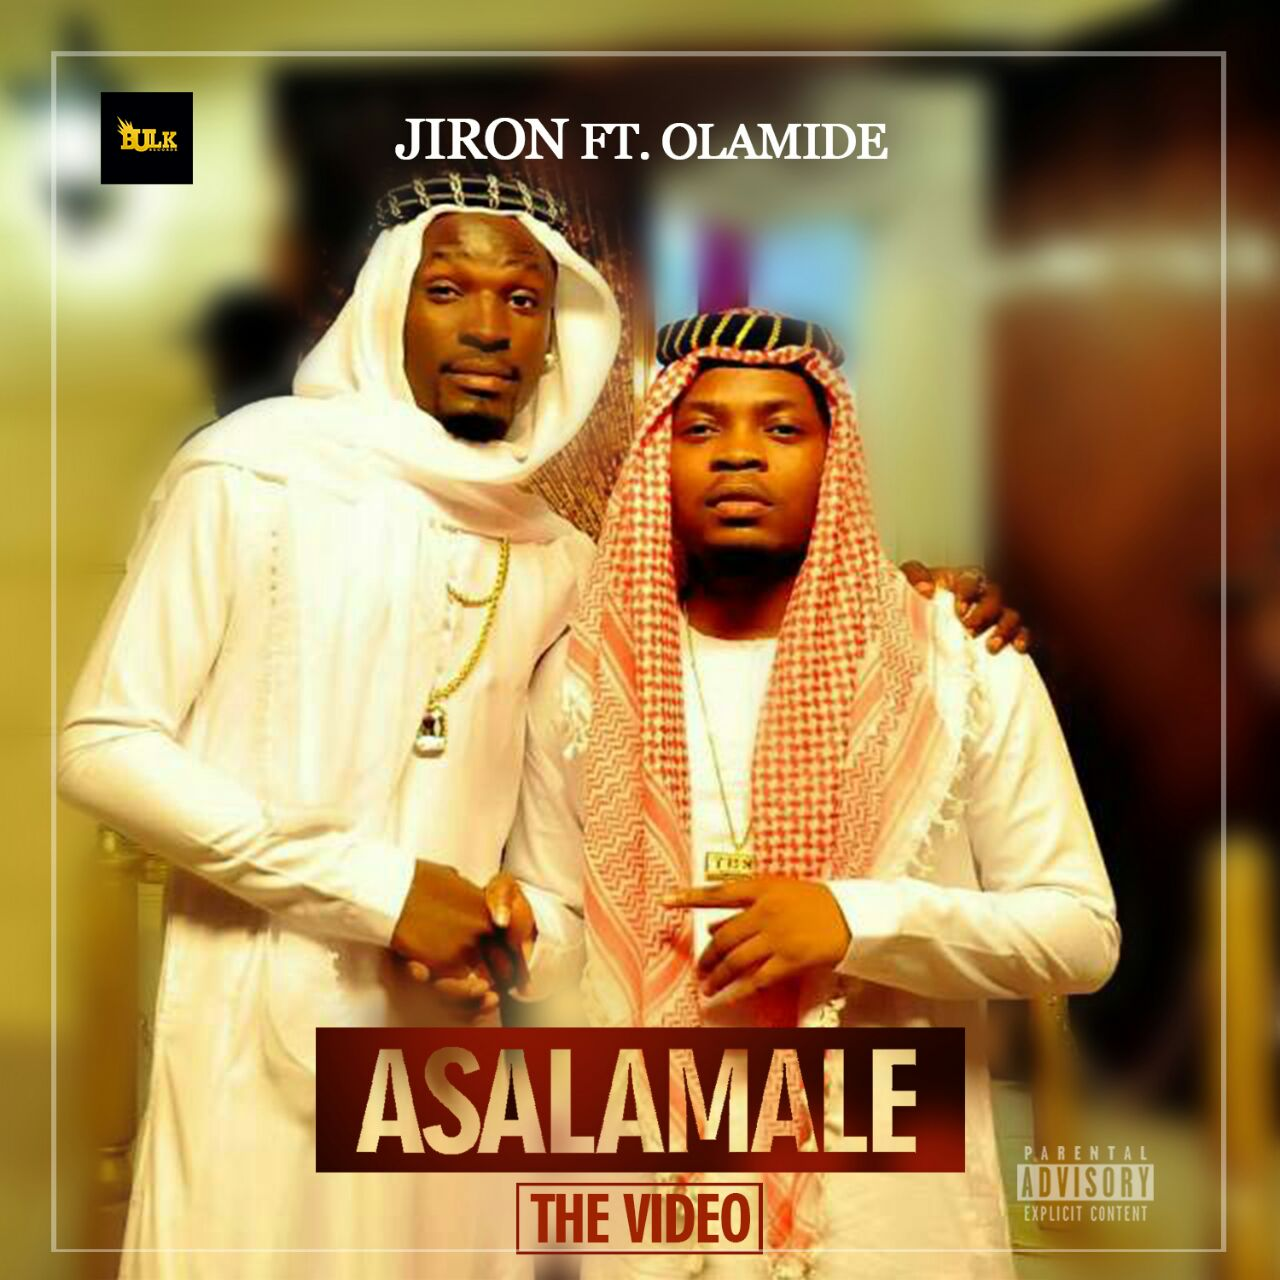 VIDEO: Jiron ft. Olamide – Asalamale